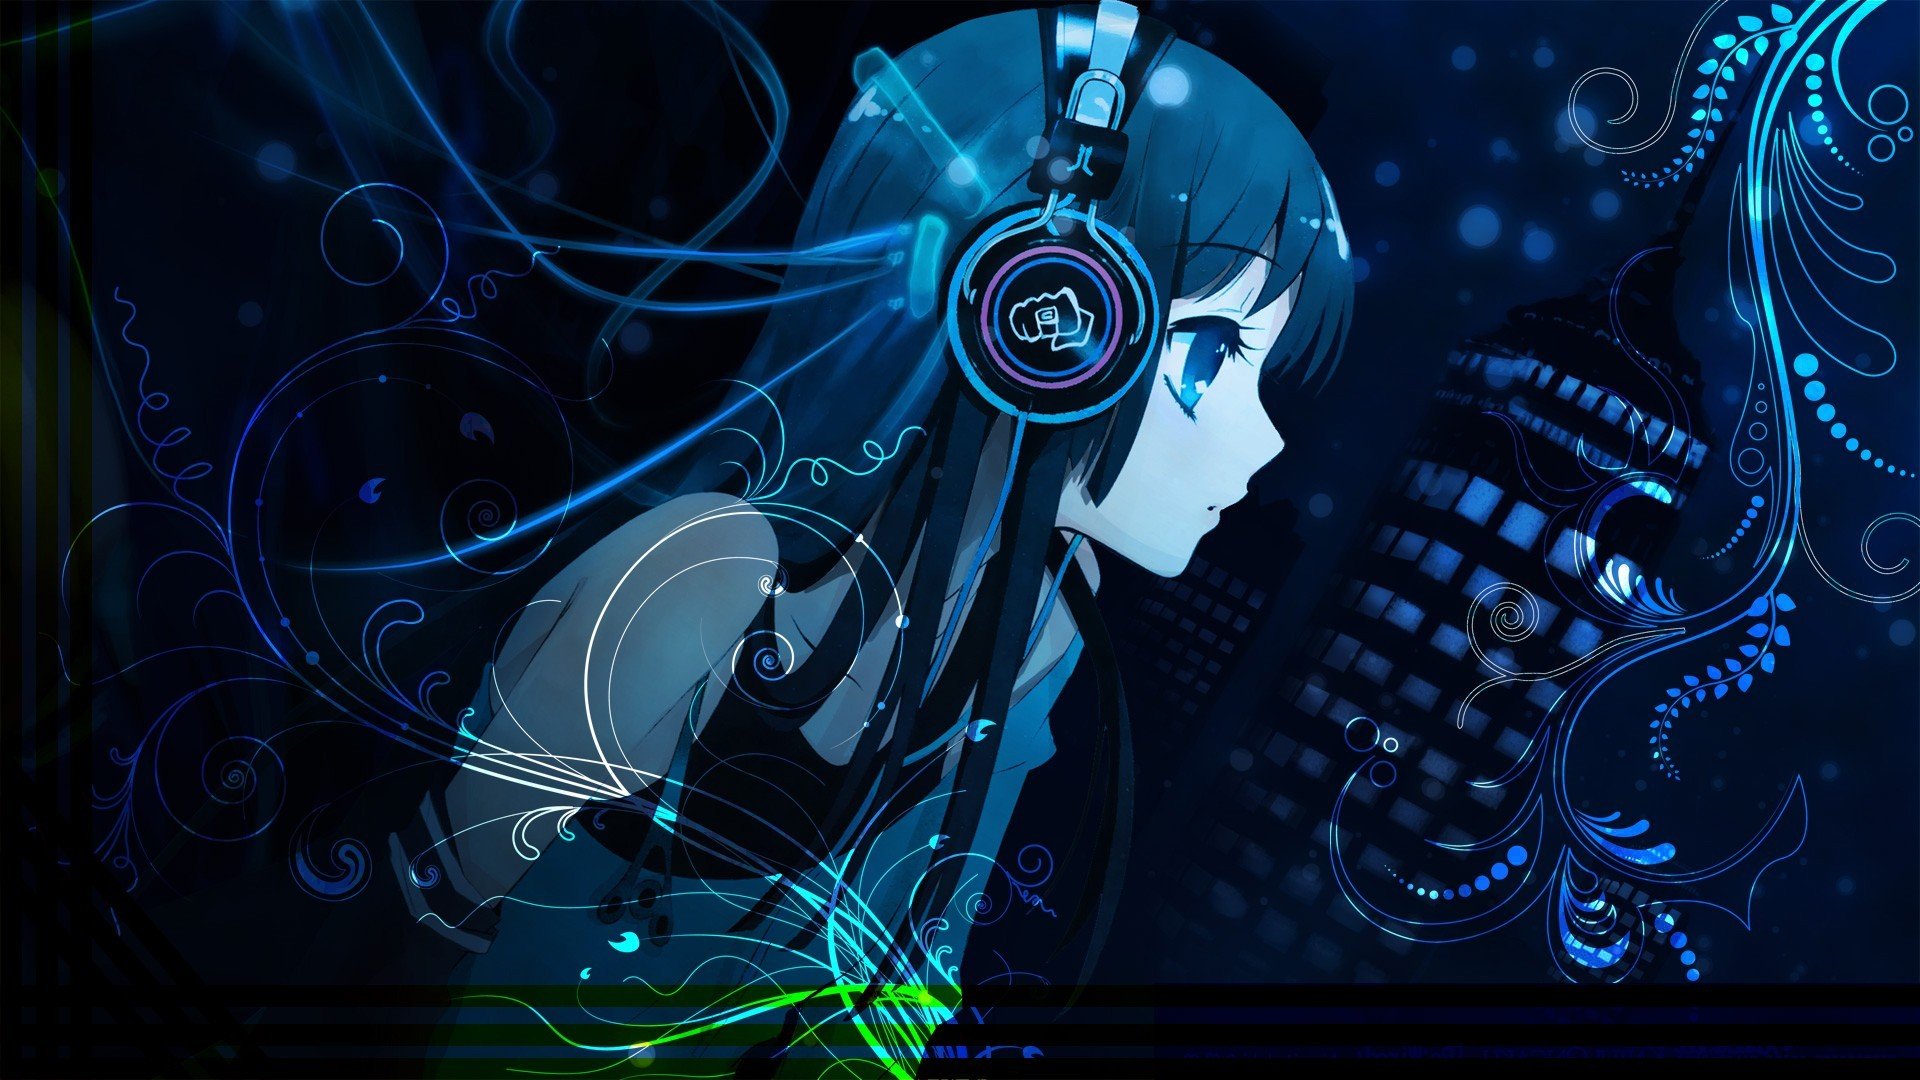 Anime-Music-Girl-DreamLove-wallpaper-wp3602552